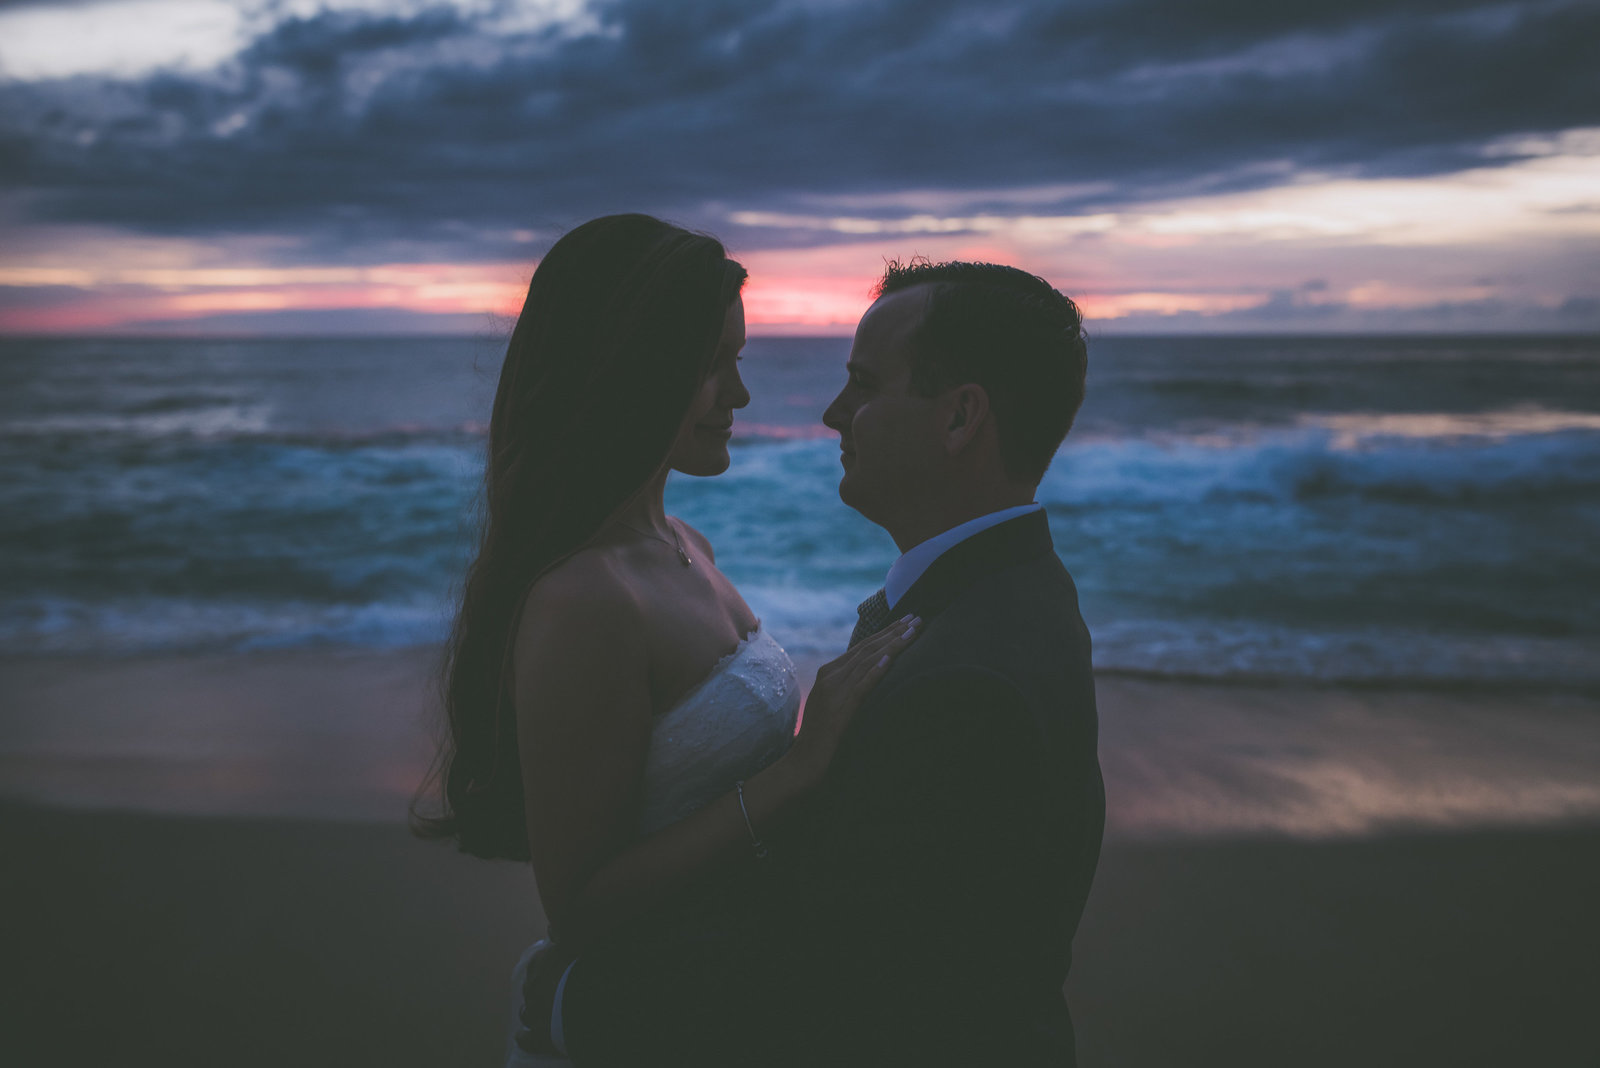 Newly weds gaze at each other during sunset on a beach.